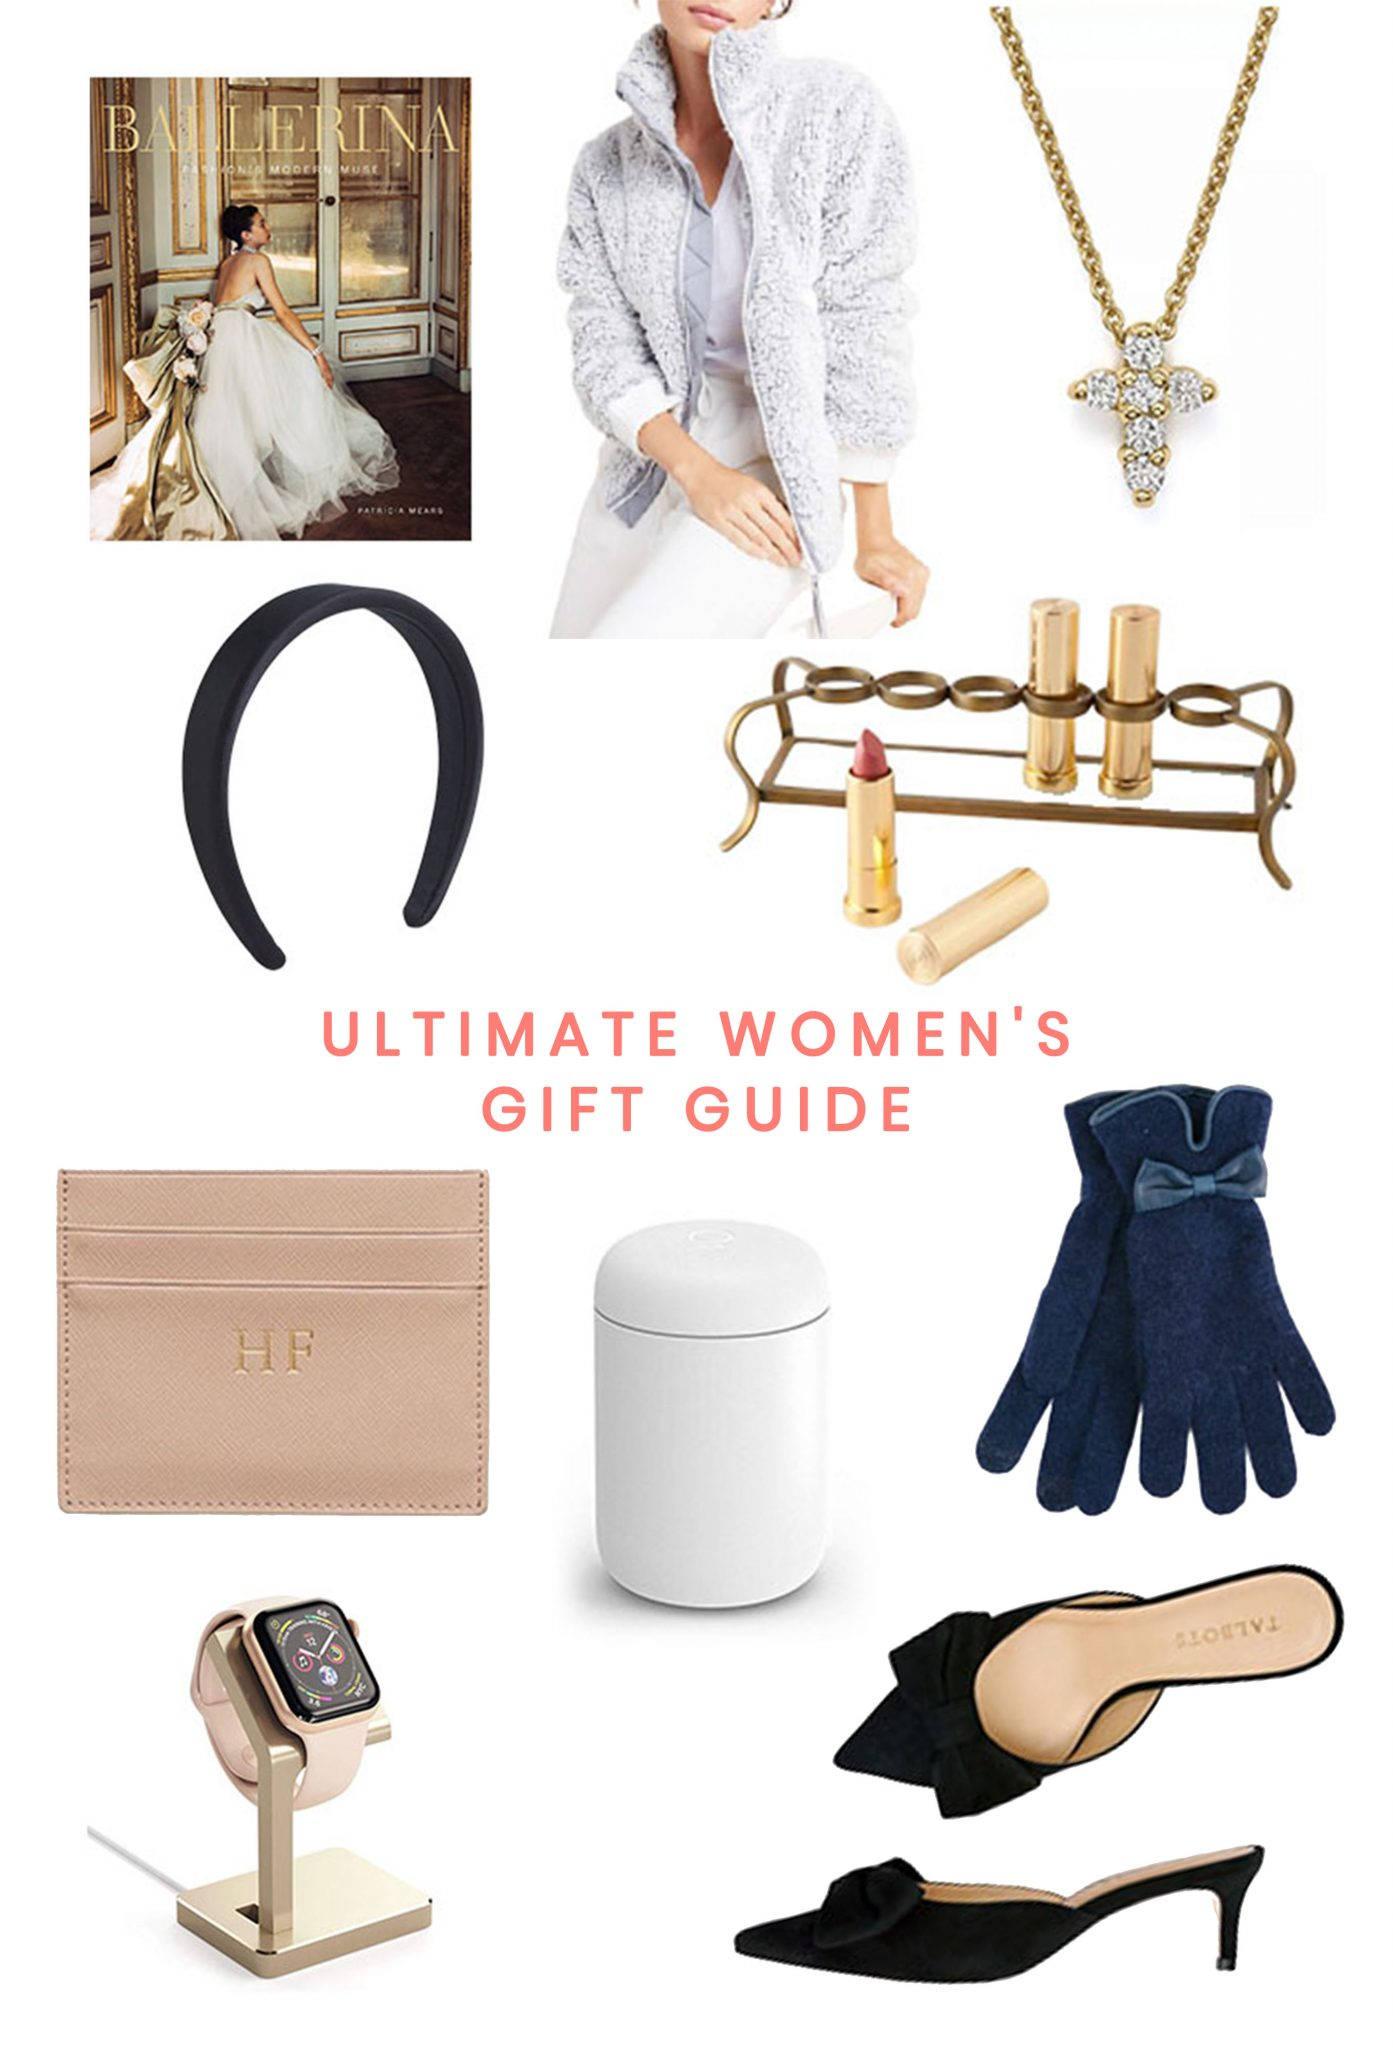 Ultimate Women's Gift Guide 2019 - Ashley Brooke